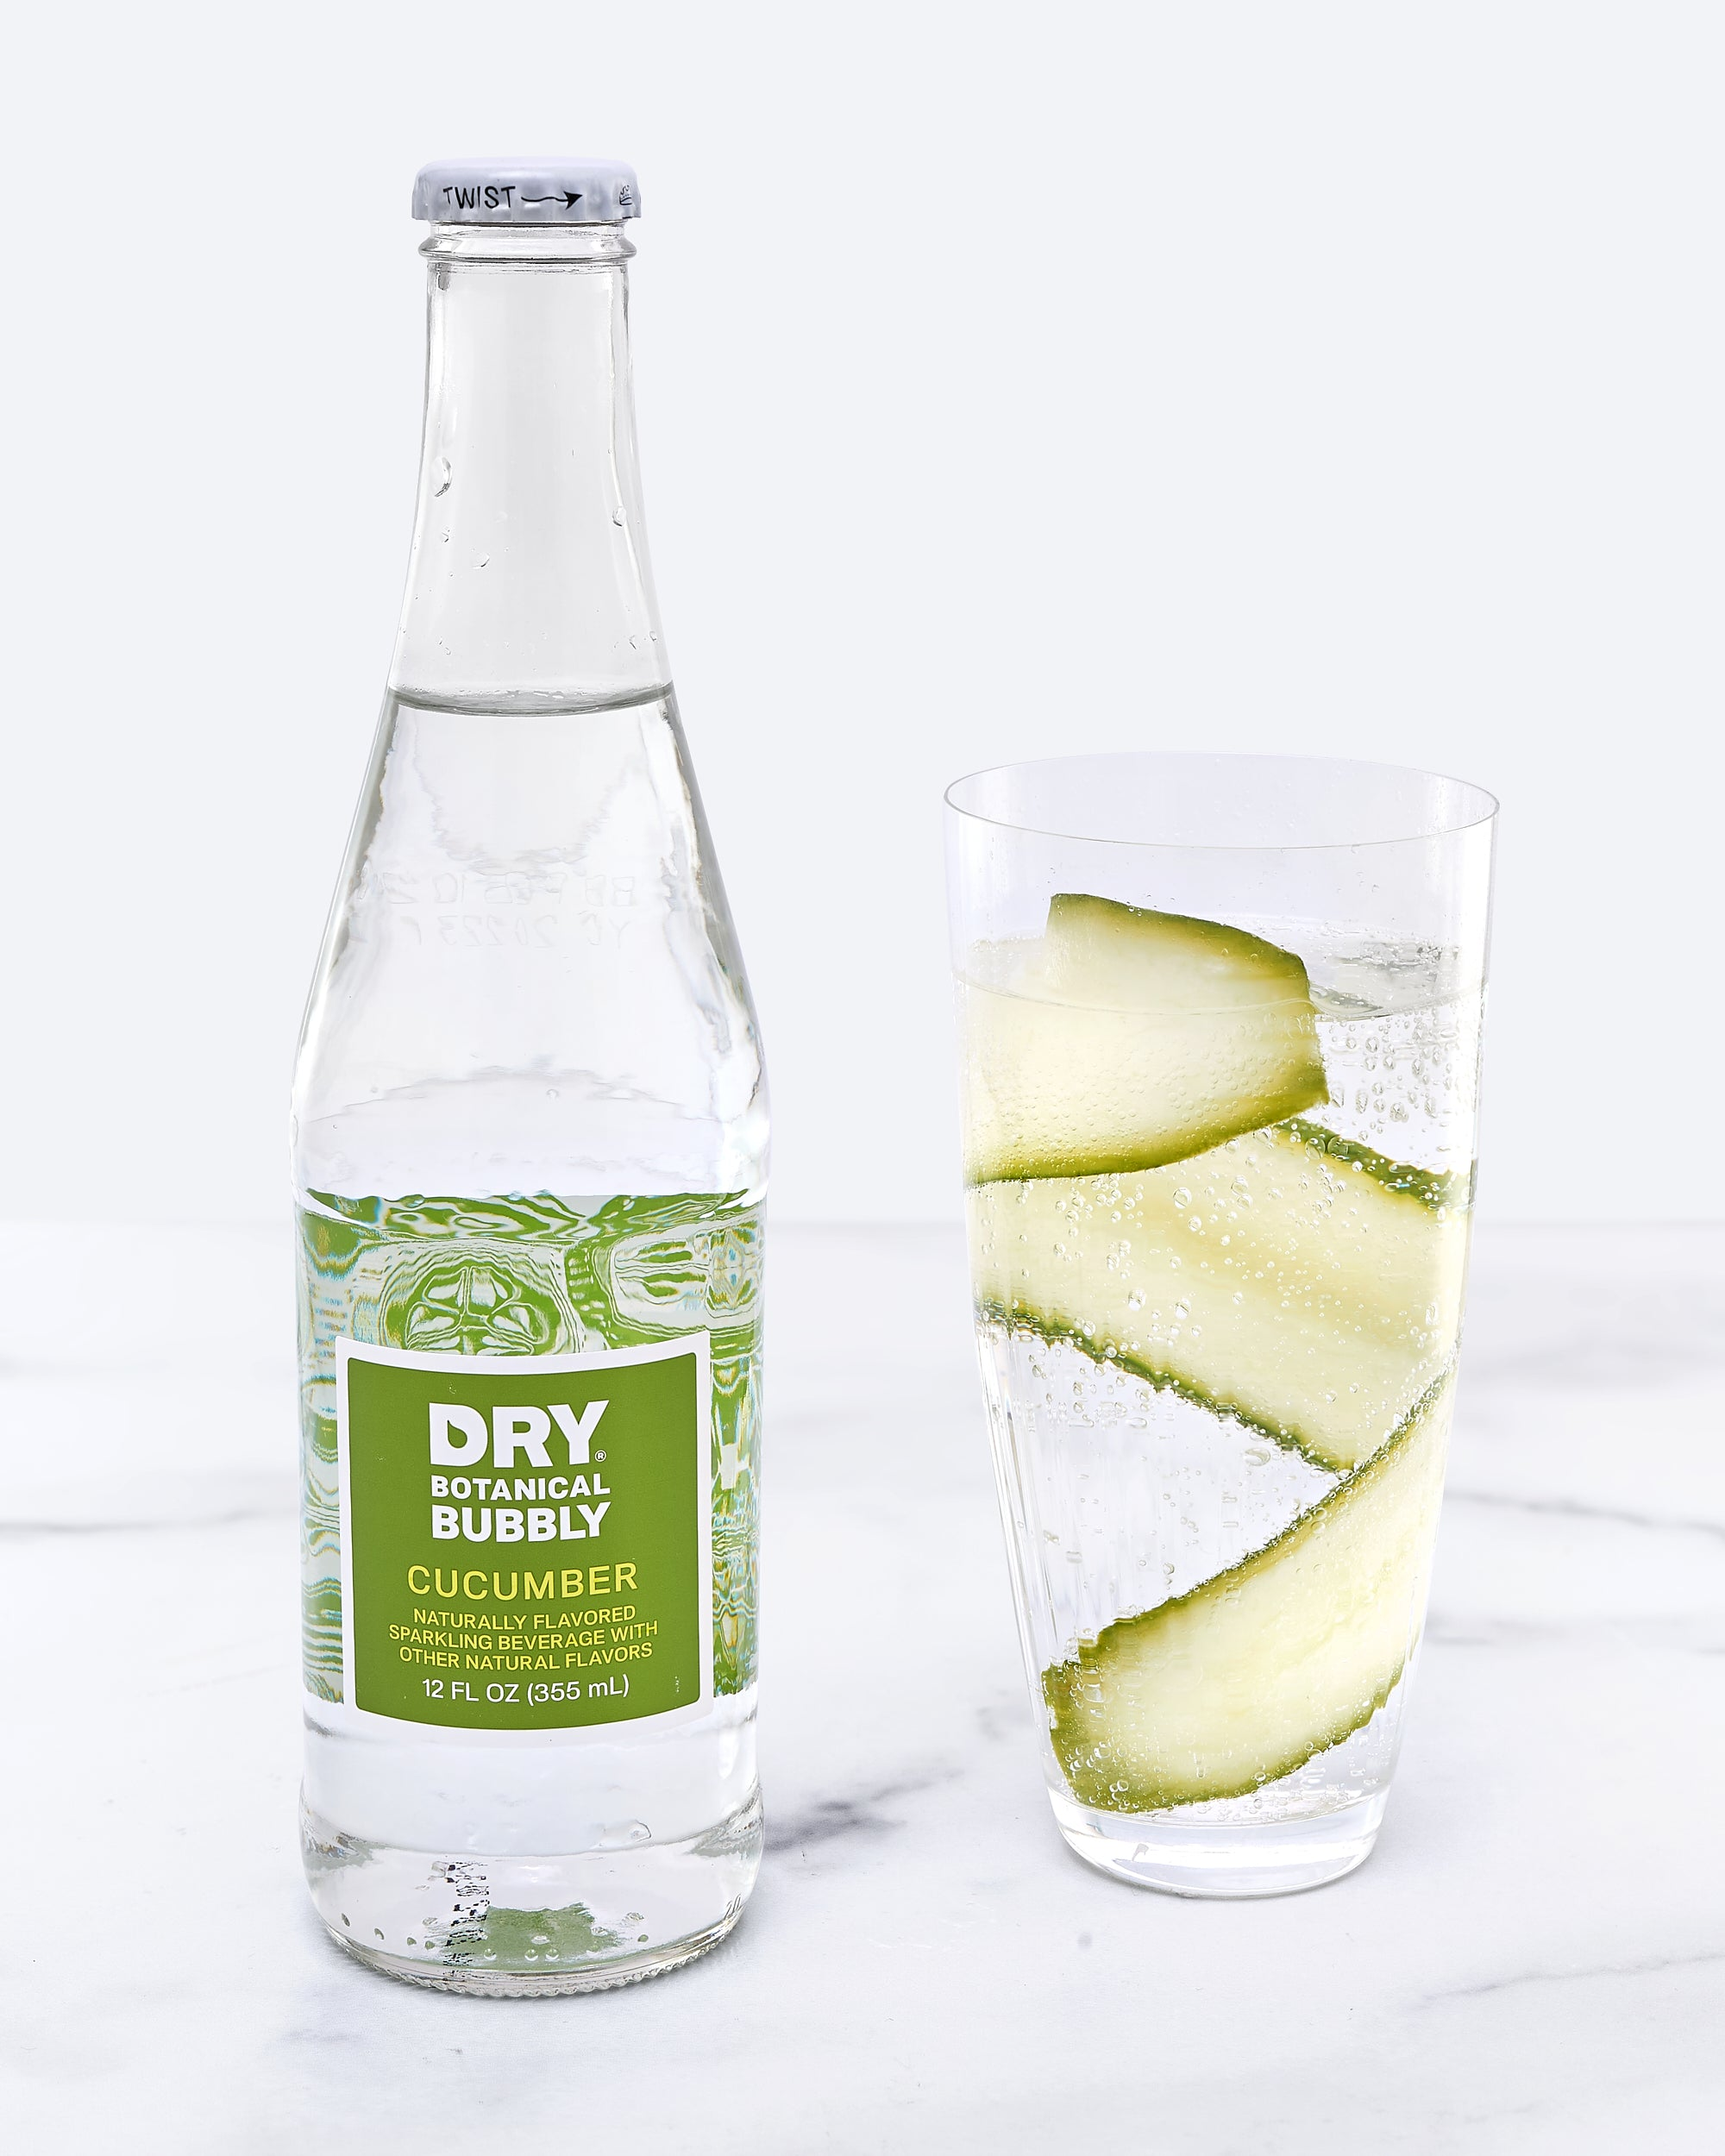 DRY Cucumber Botanical Bubbly (12 Pack)